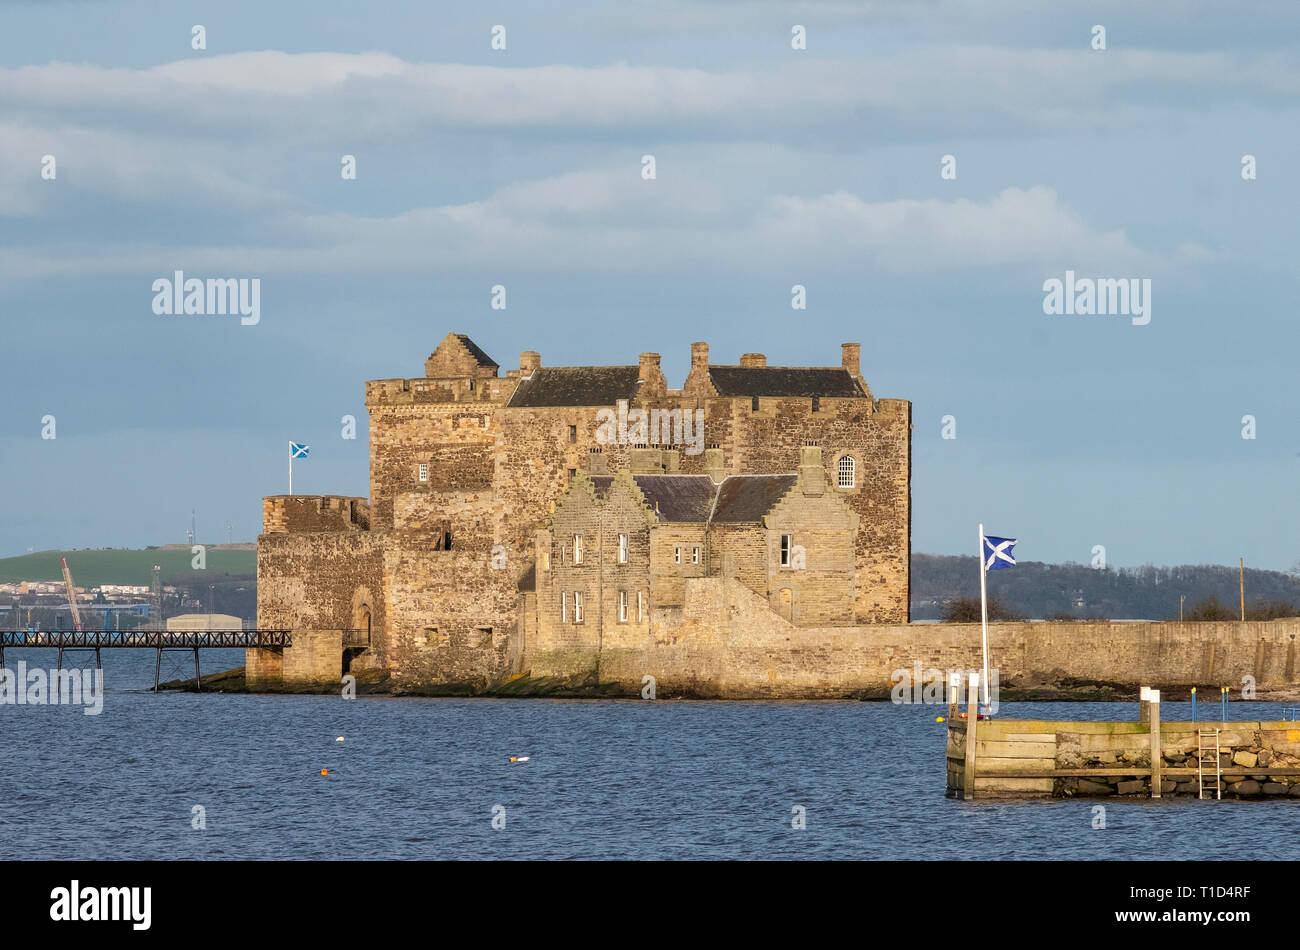 Blackness Castle on the shore of the Firth of Forth near Linlithgow. It has been used as a film location and most recently in the Outlander tv series. - Stock Image